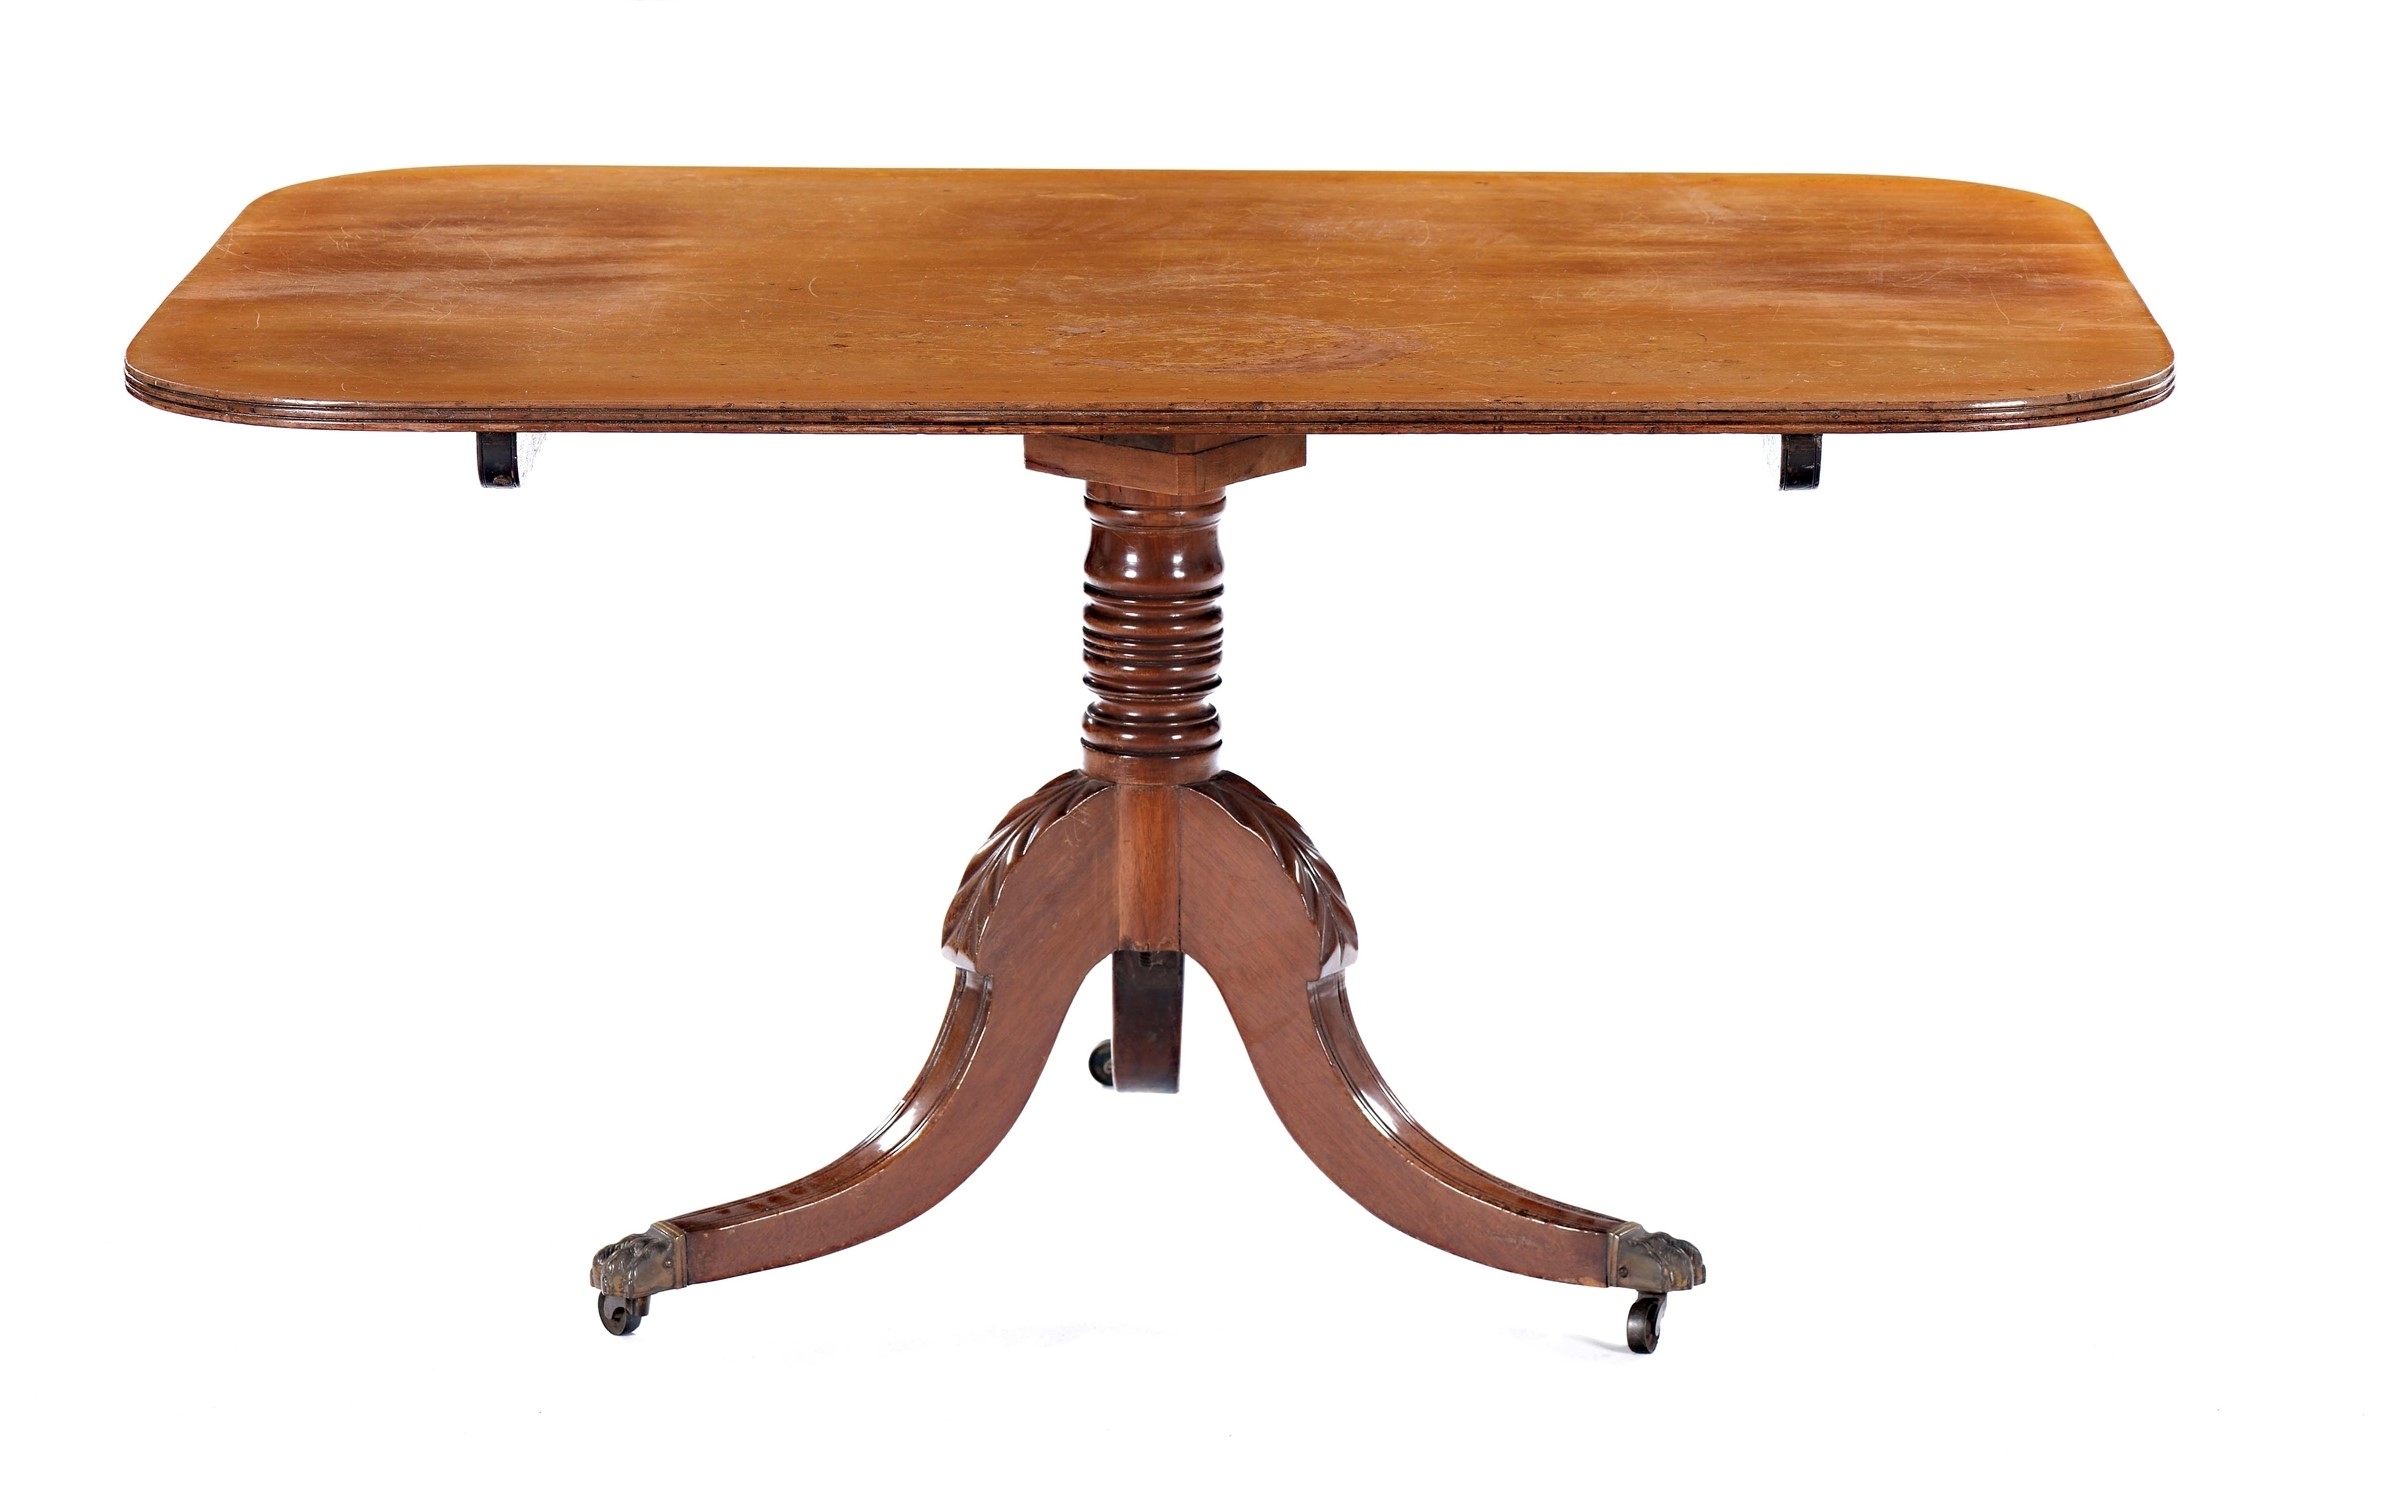 2018 A Mahogany Dining Table, England, 19Th Century – Furnishings From Pertaining To Palazzo Rectangle Dining Tables (Gallery 23 of 25)